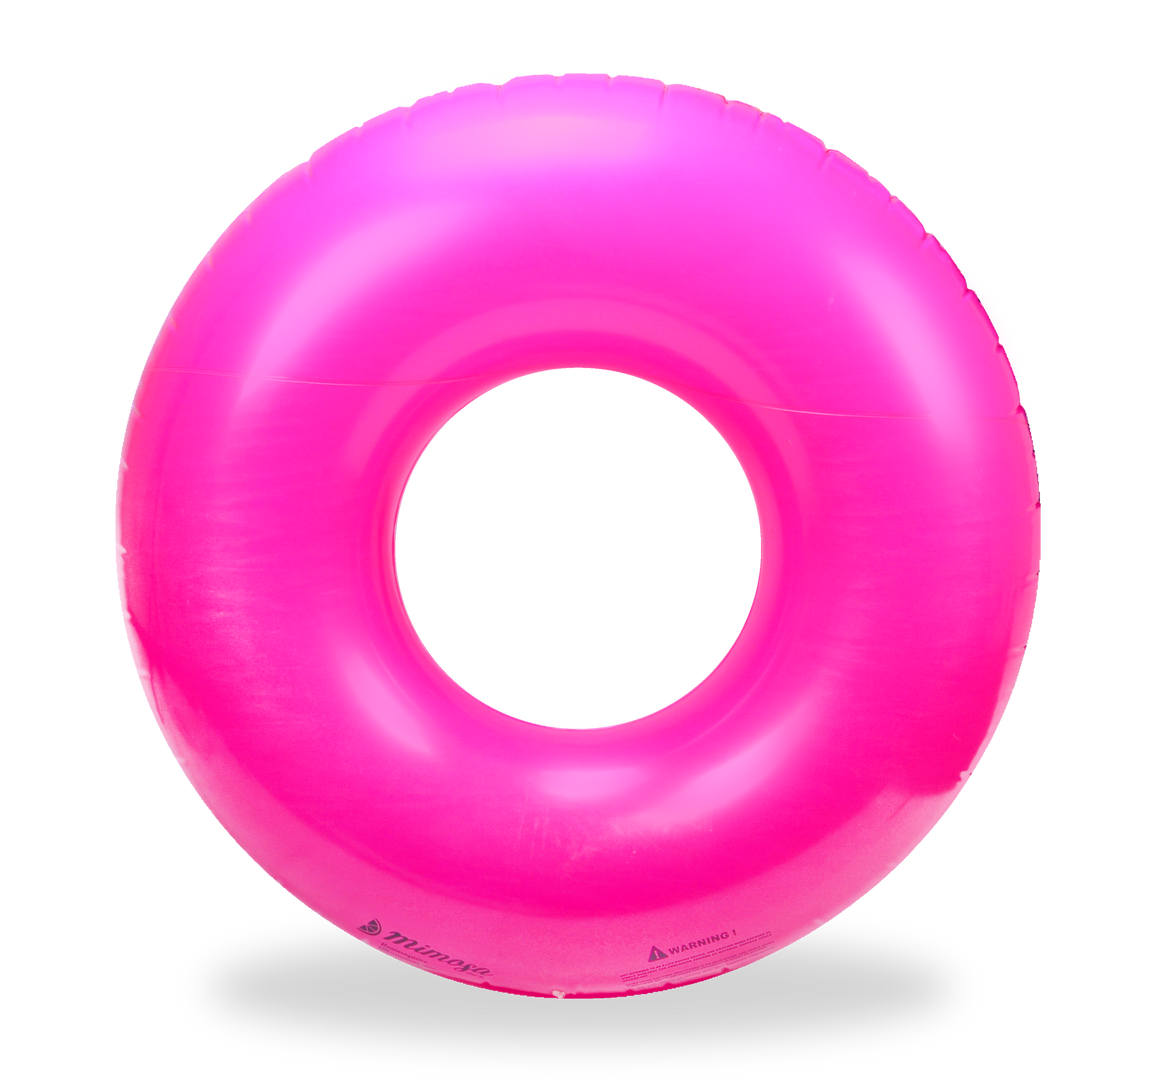 Hot Pink Round Tube Pool Float by Mimosa Inc